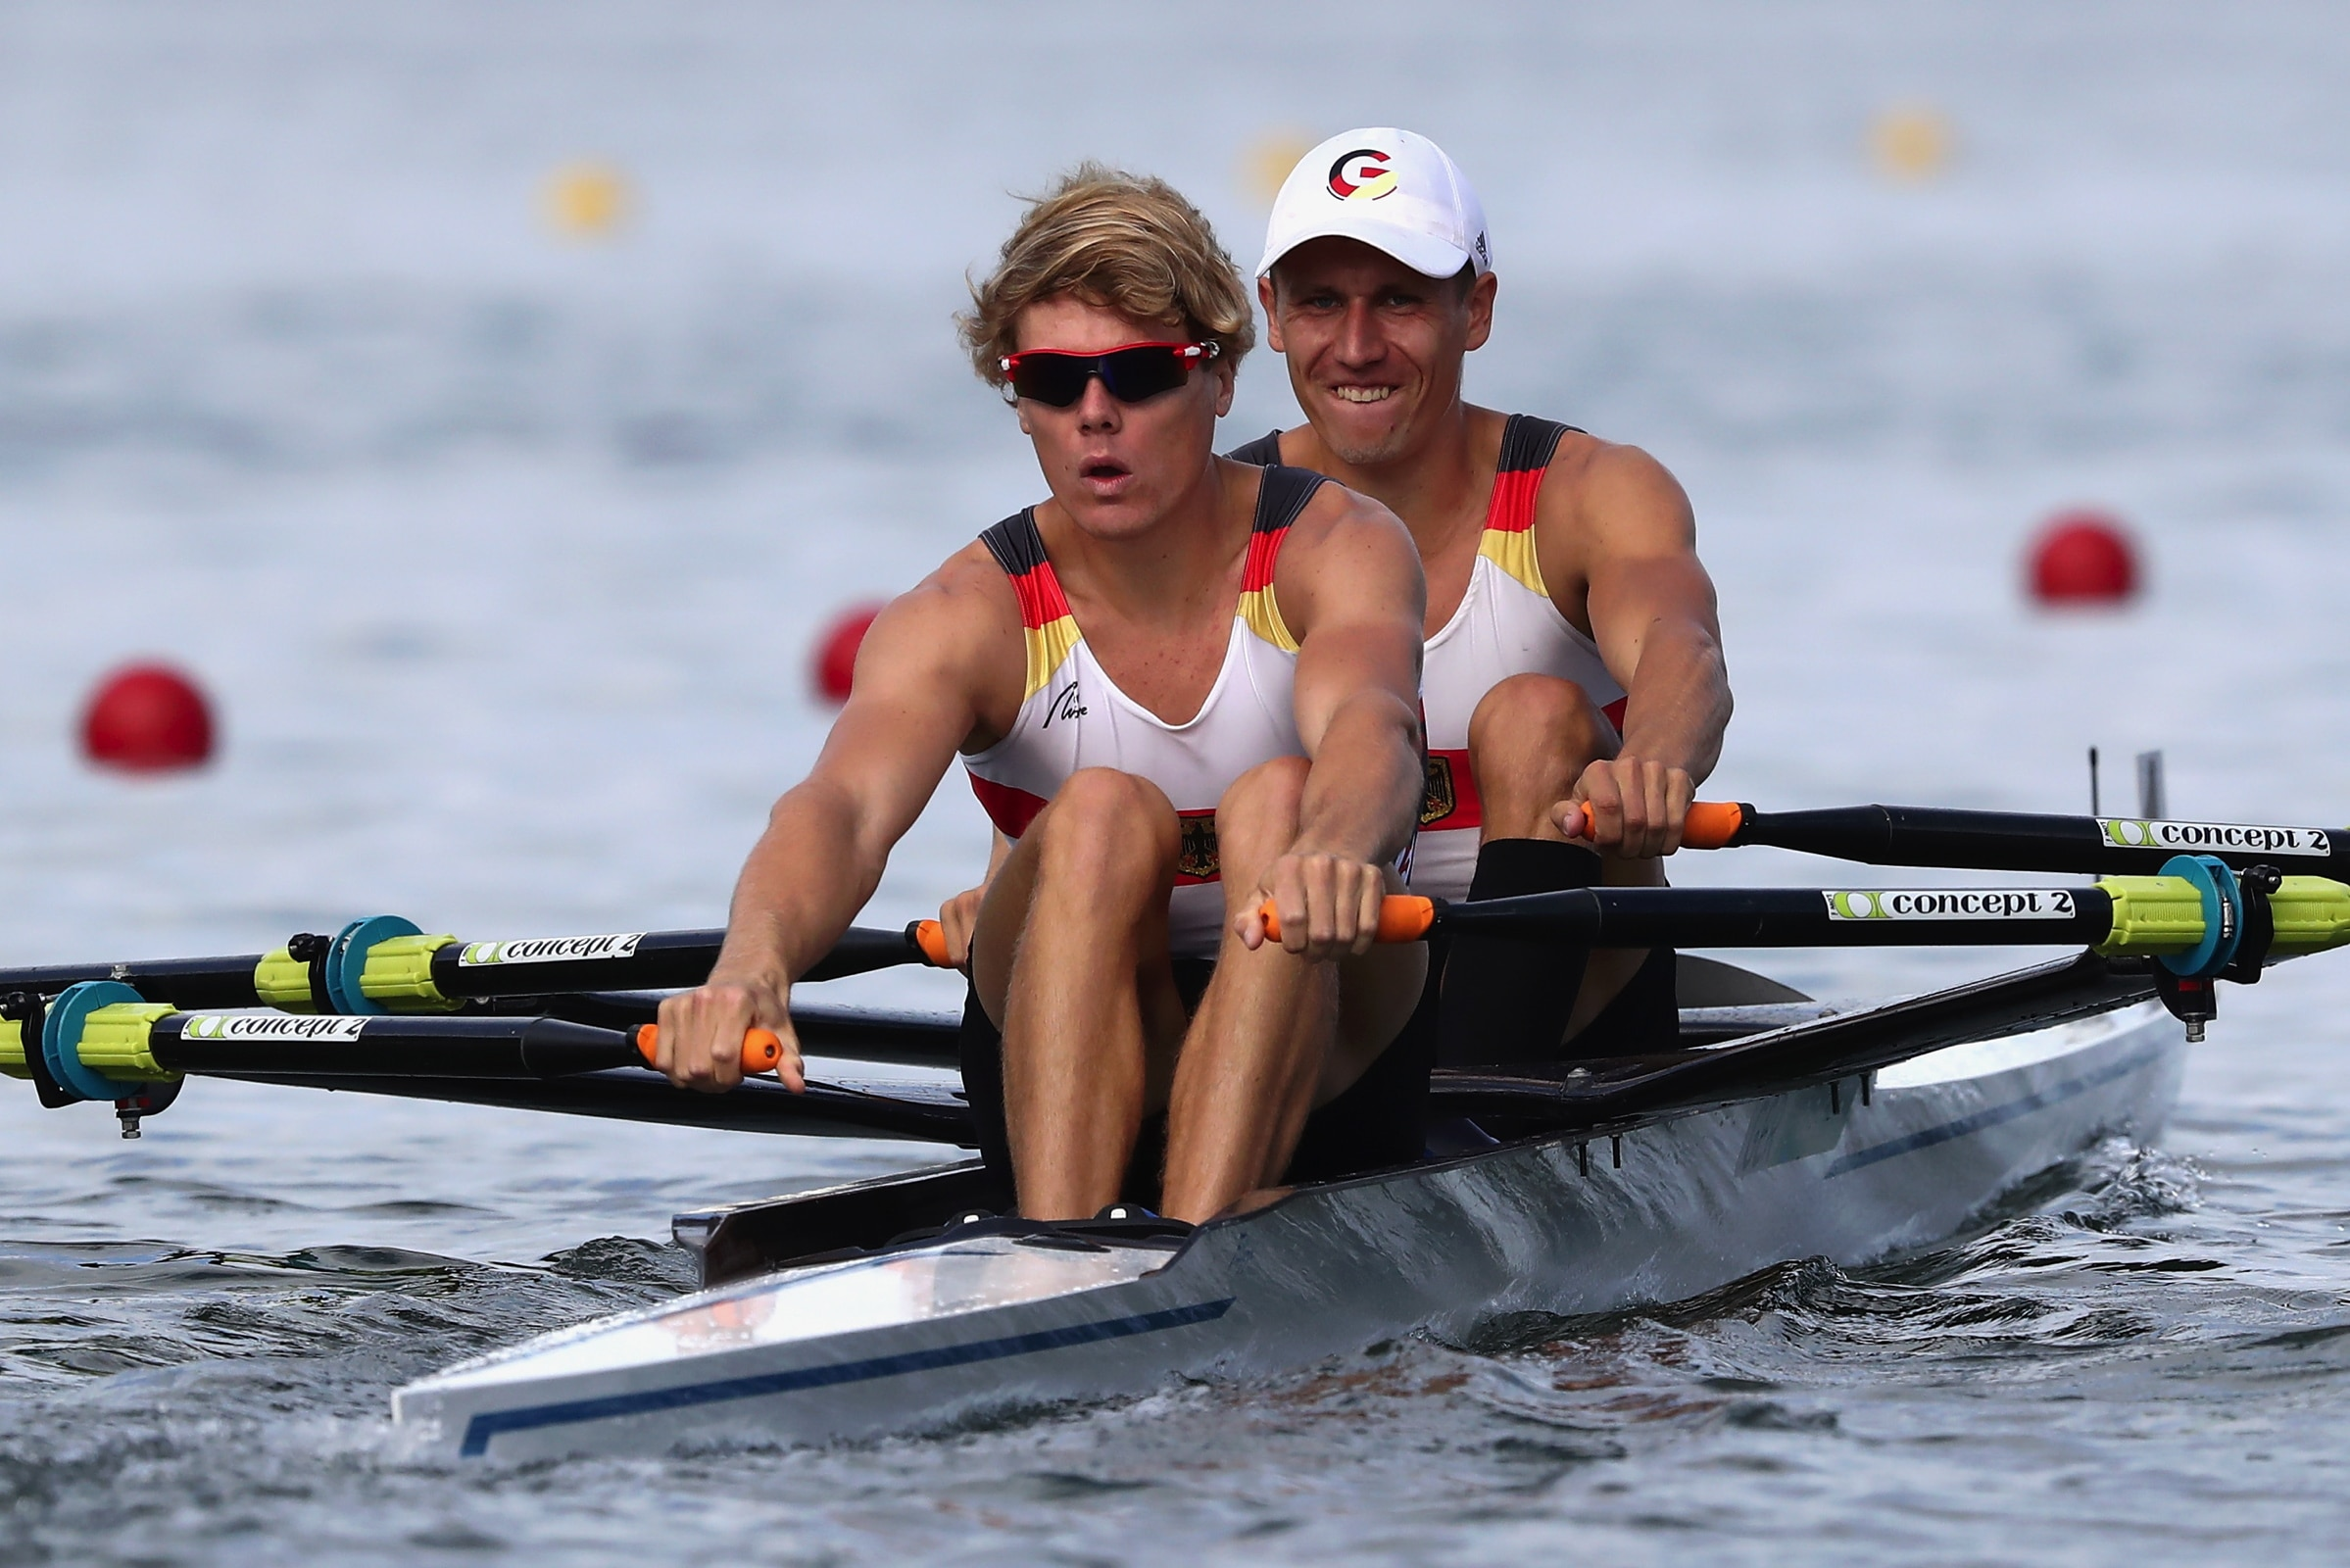 Rowing - Men's Double Sculls